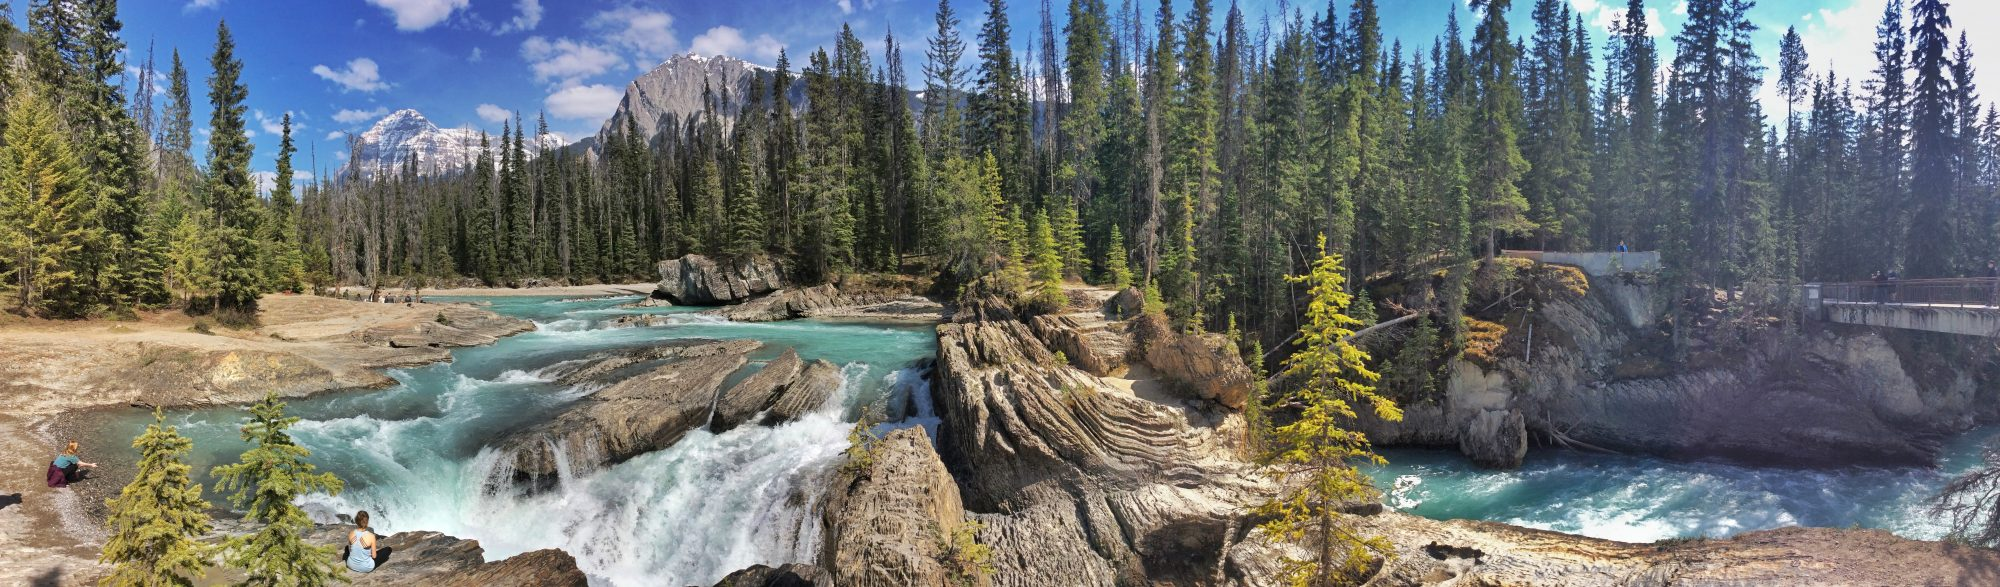 Athabasca Falls on the Icefields Parkway, Canada